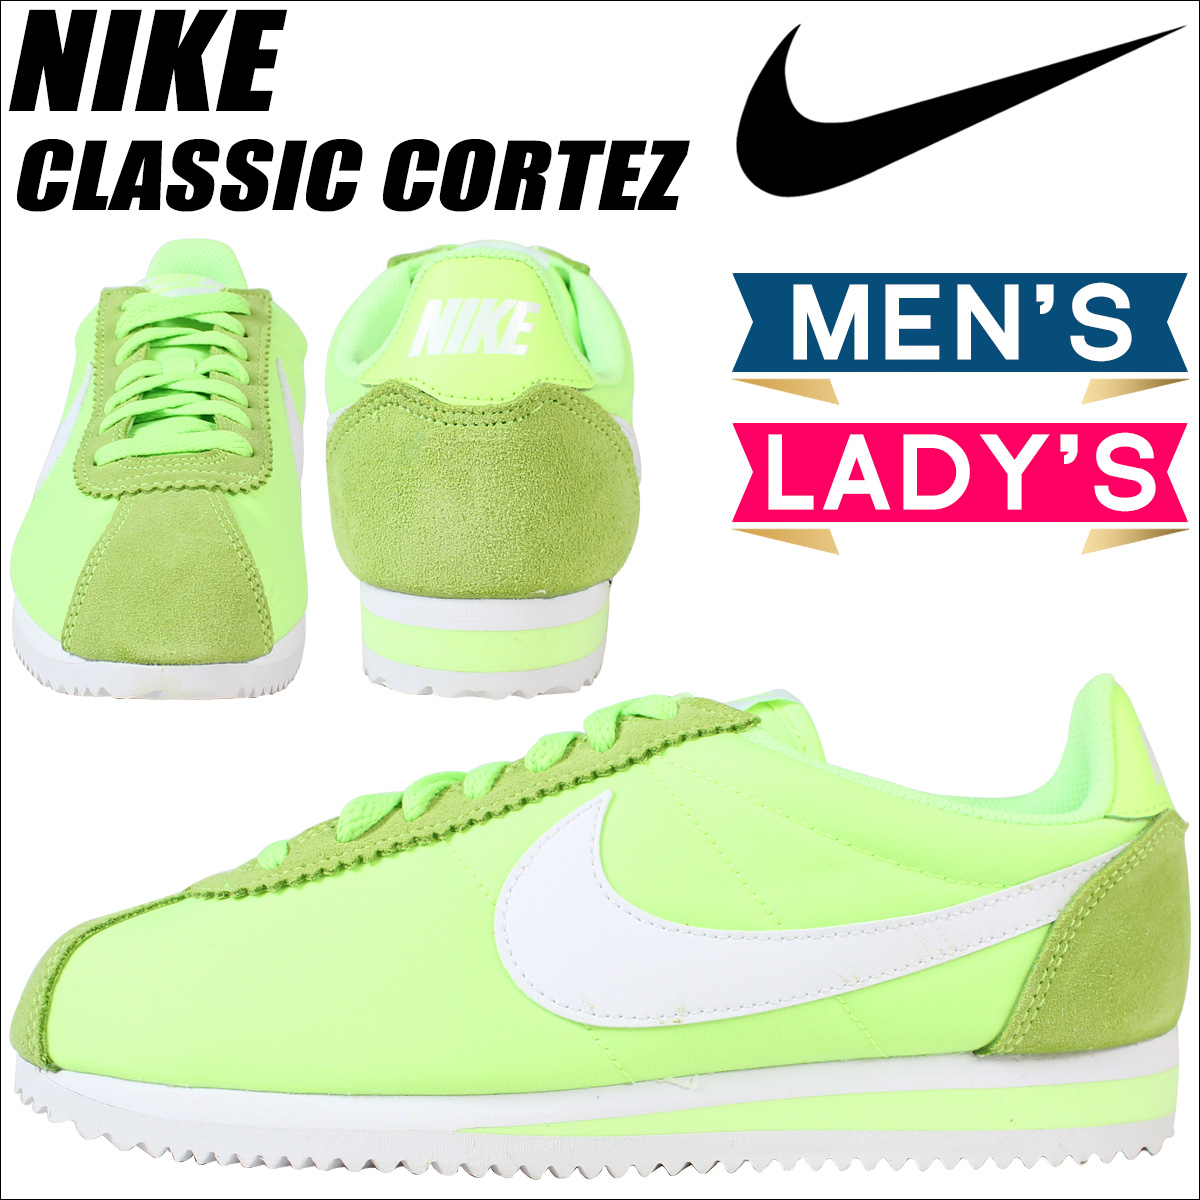 NIKE Nike Cortez sneakers Womens CLASSIC CORTEZ NYLON 749864-310 mens shoes Green